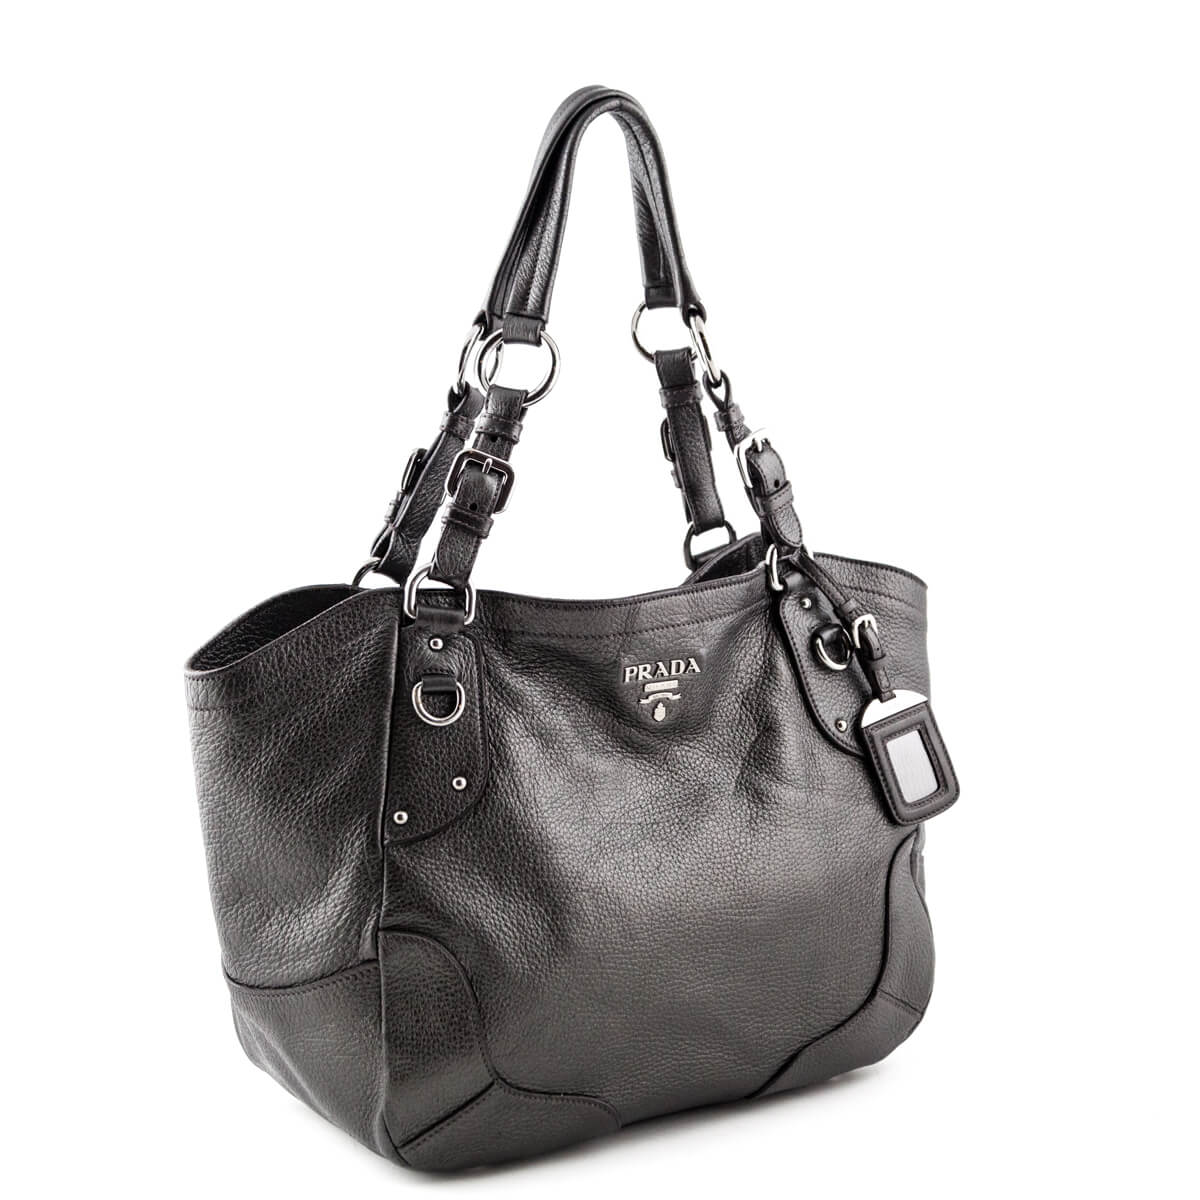 08363cbe47f6 ... Prada Metallic Charcoal Vitello Daino Shoulder Bag - LOVE that BAG -  Preowned Authentic Designer Handbags ...